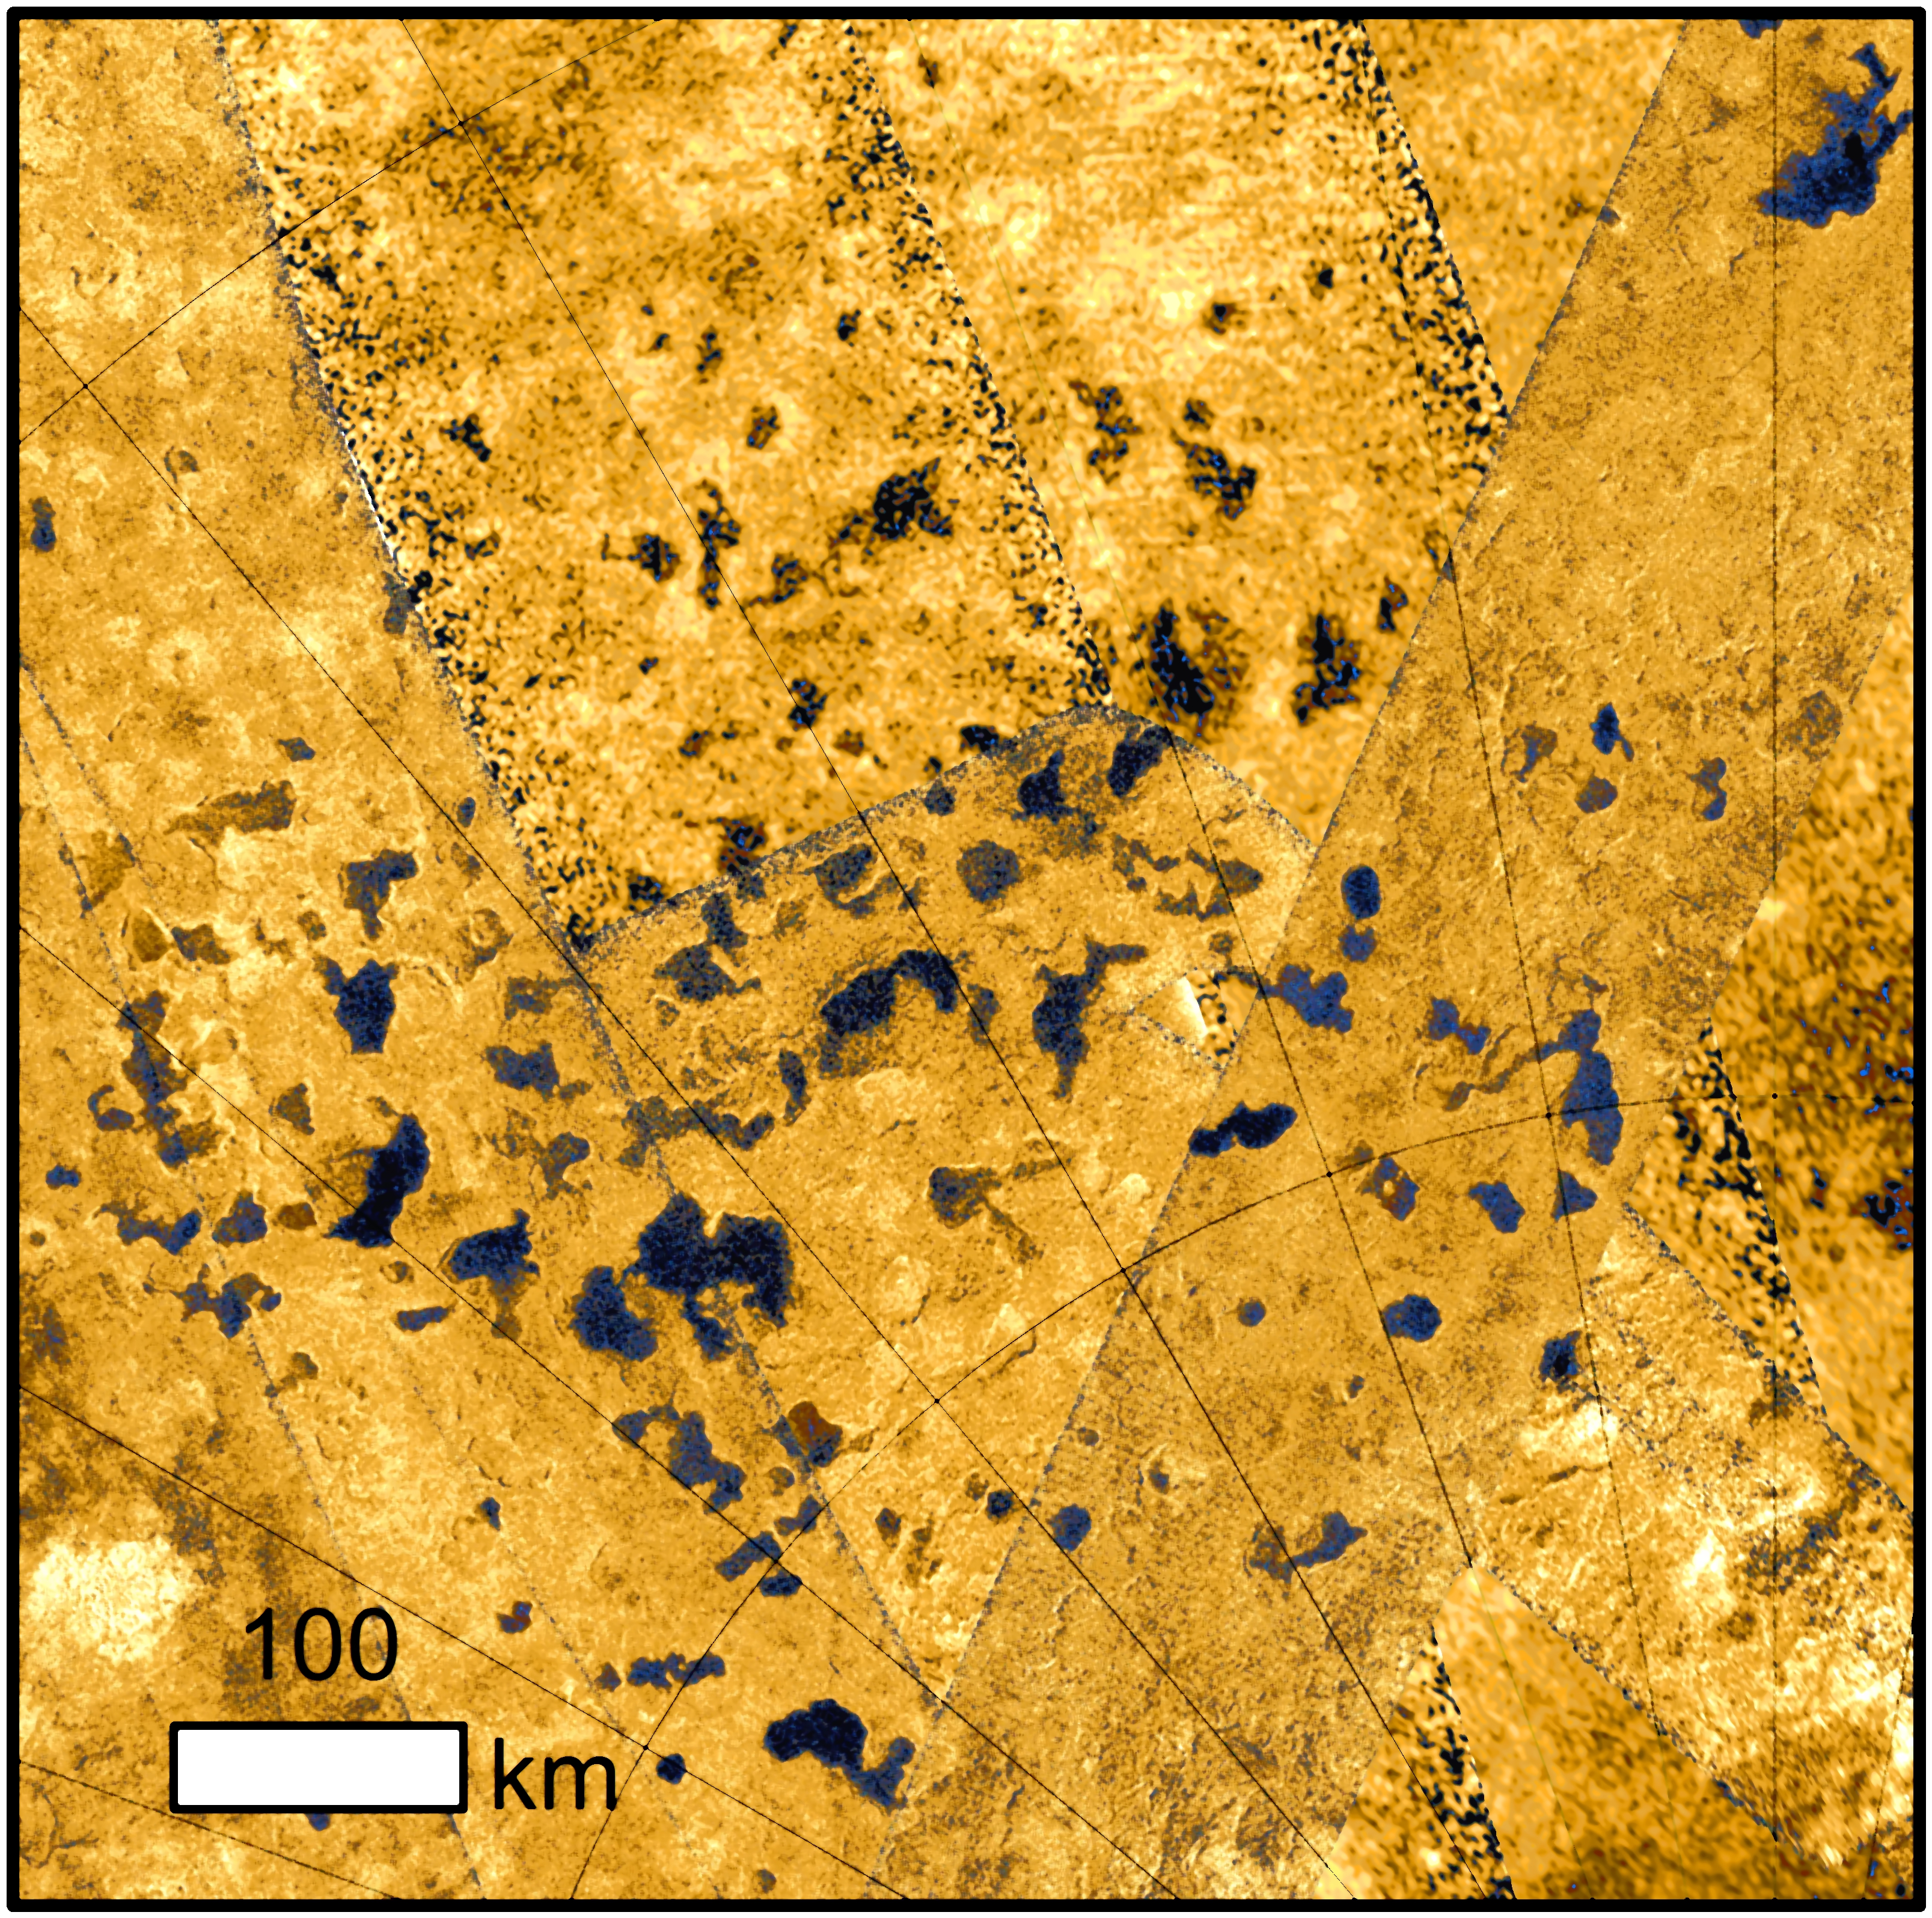 Titan S Surface Dissolves Like Sinkholes On Earth